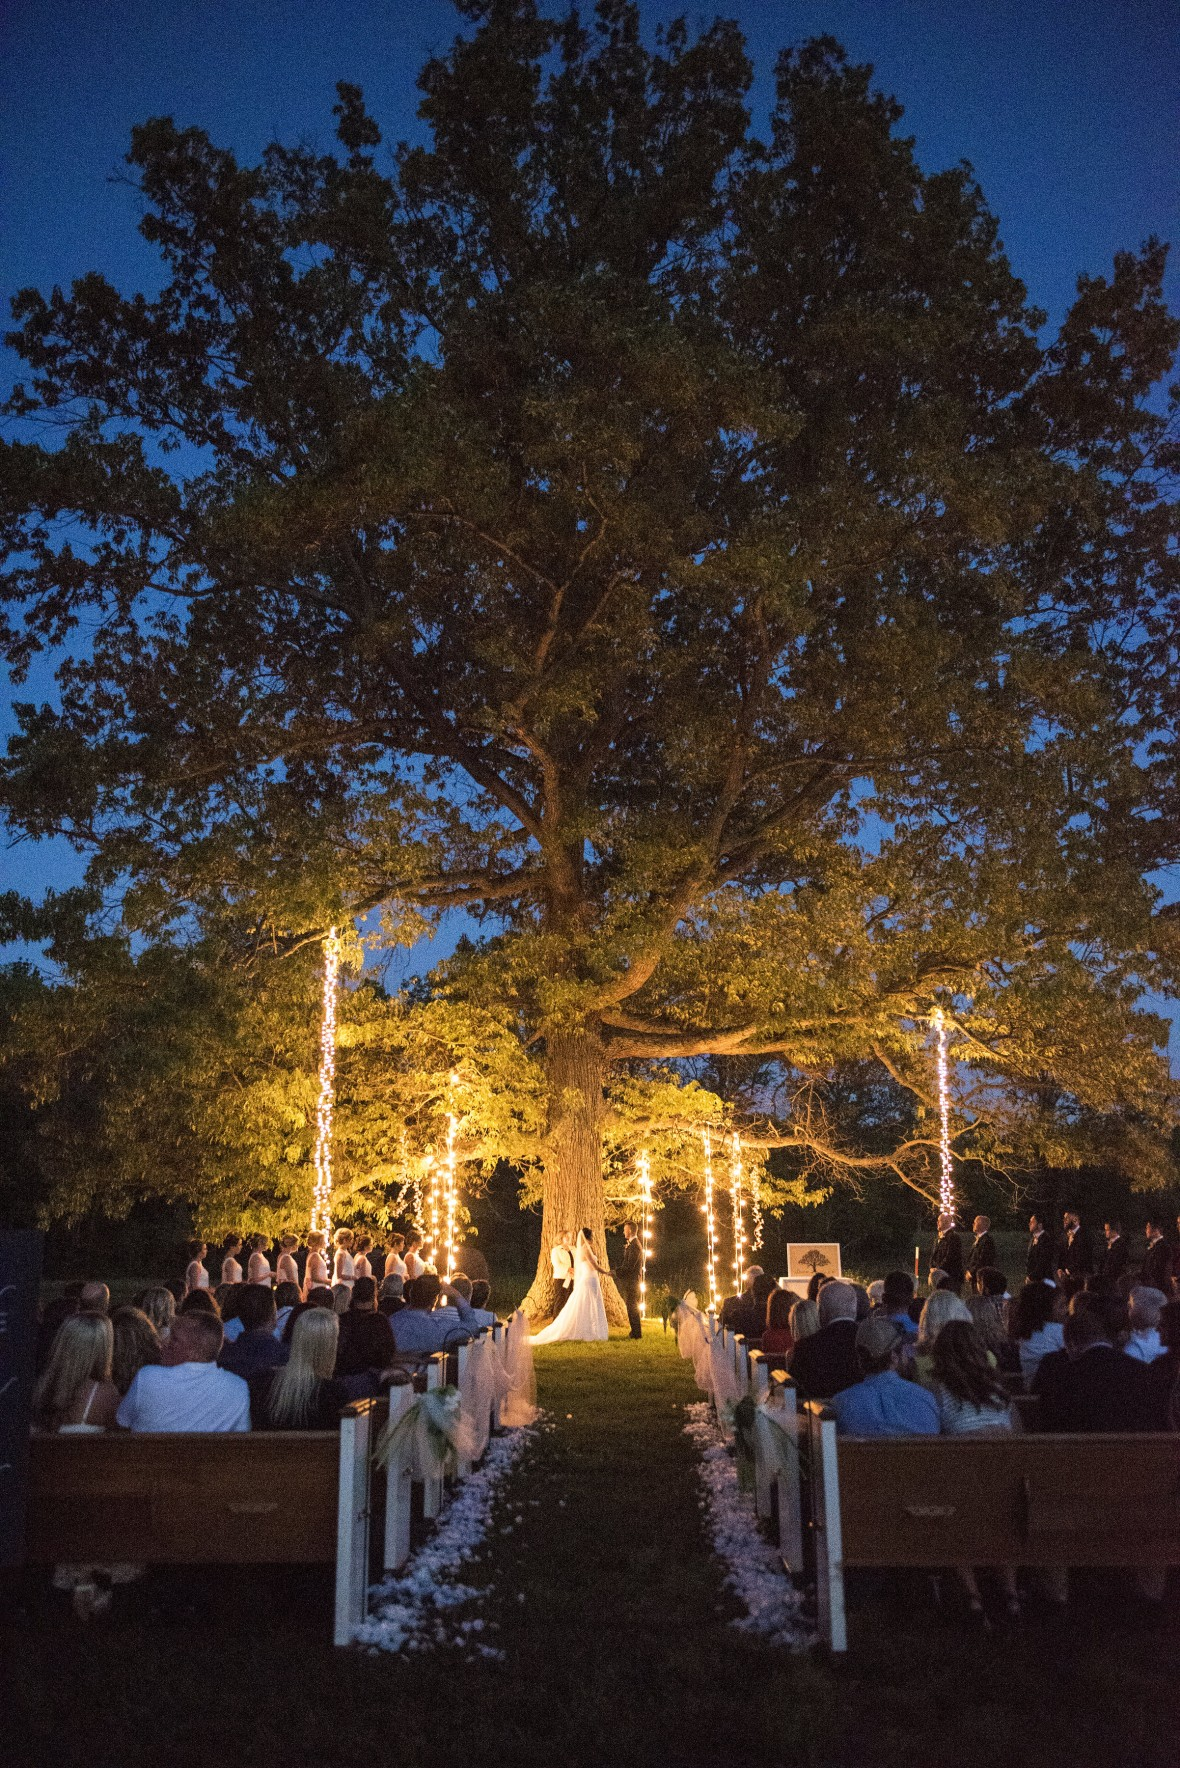 IvoryDoorStudio - Outdoor night-time ceremony in Nashville